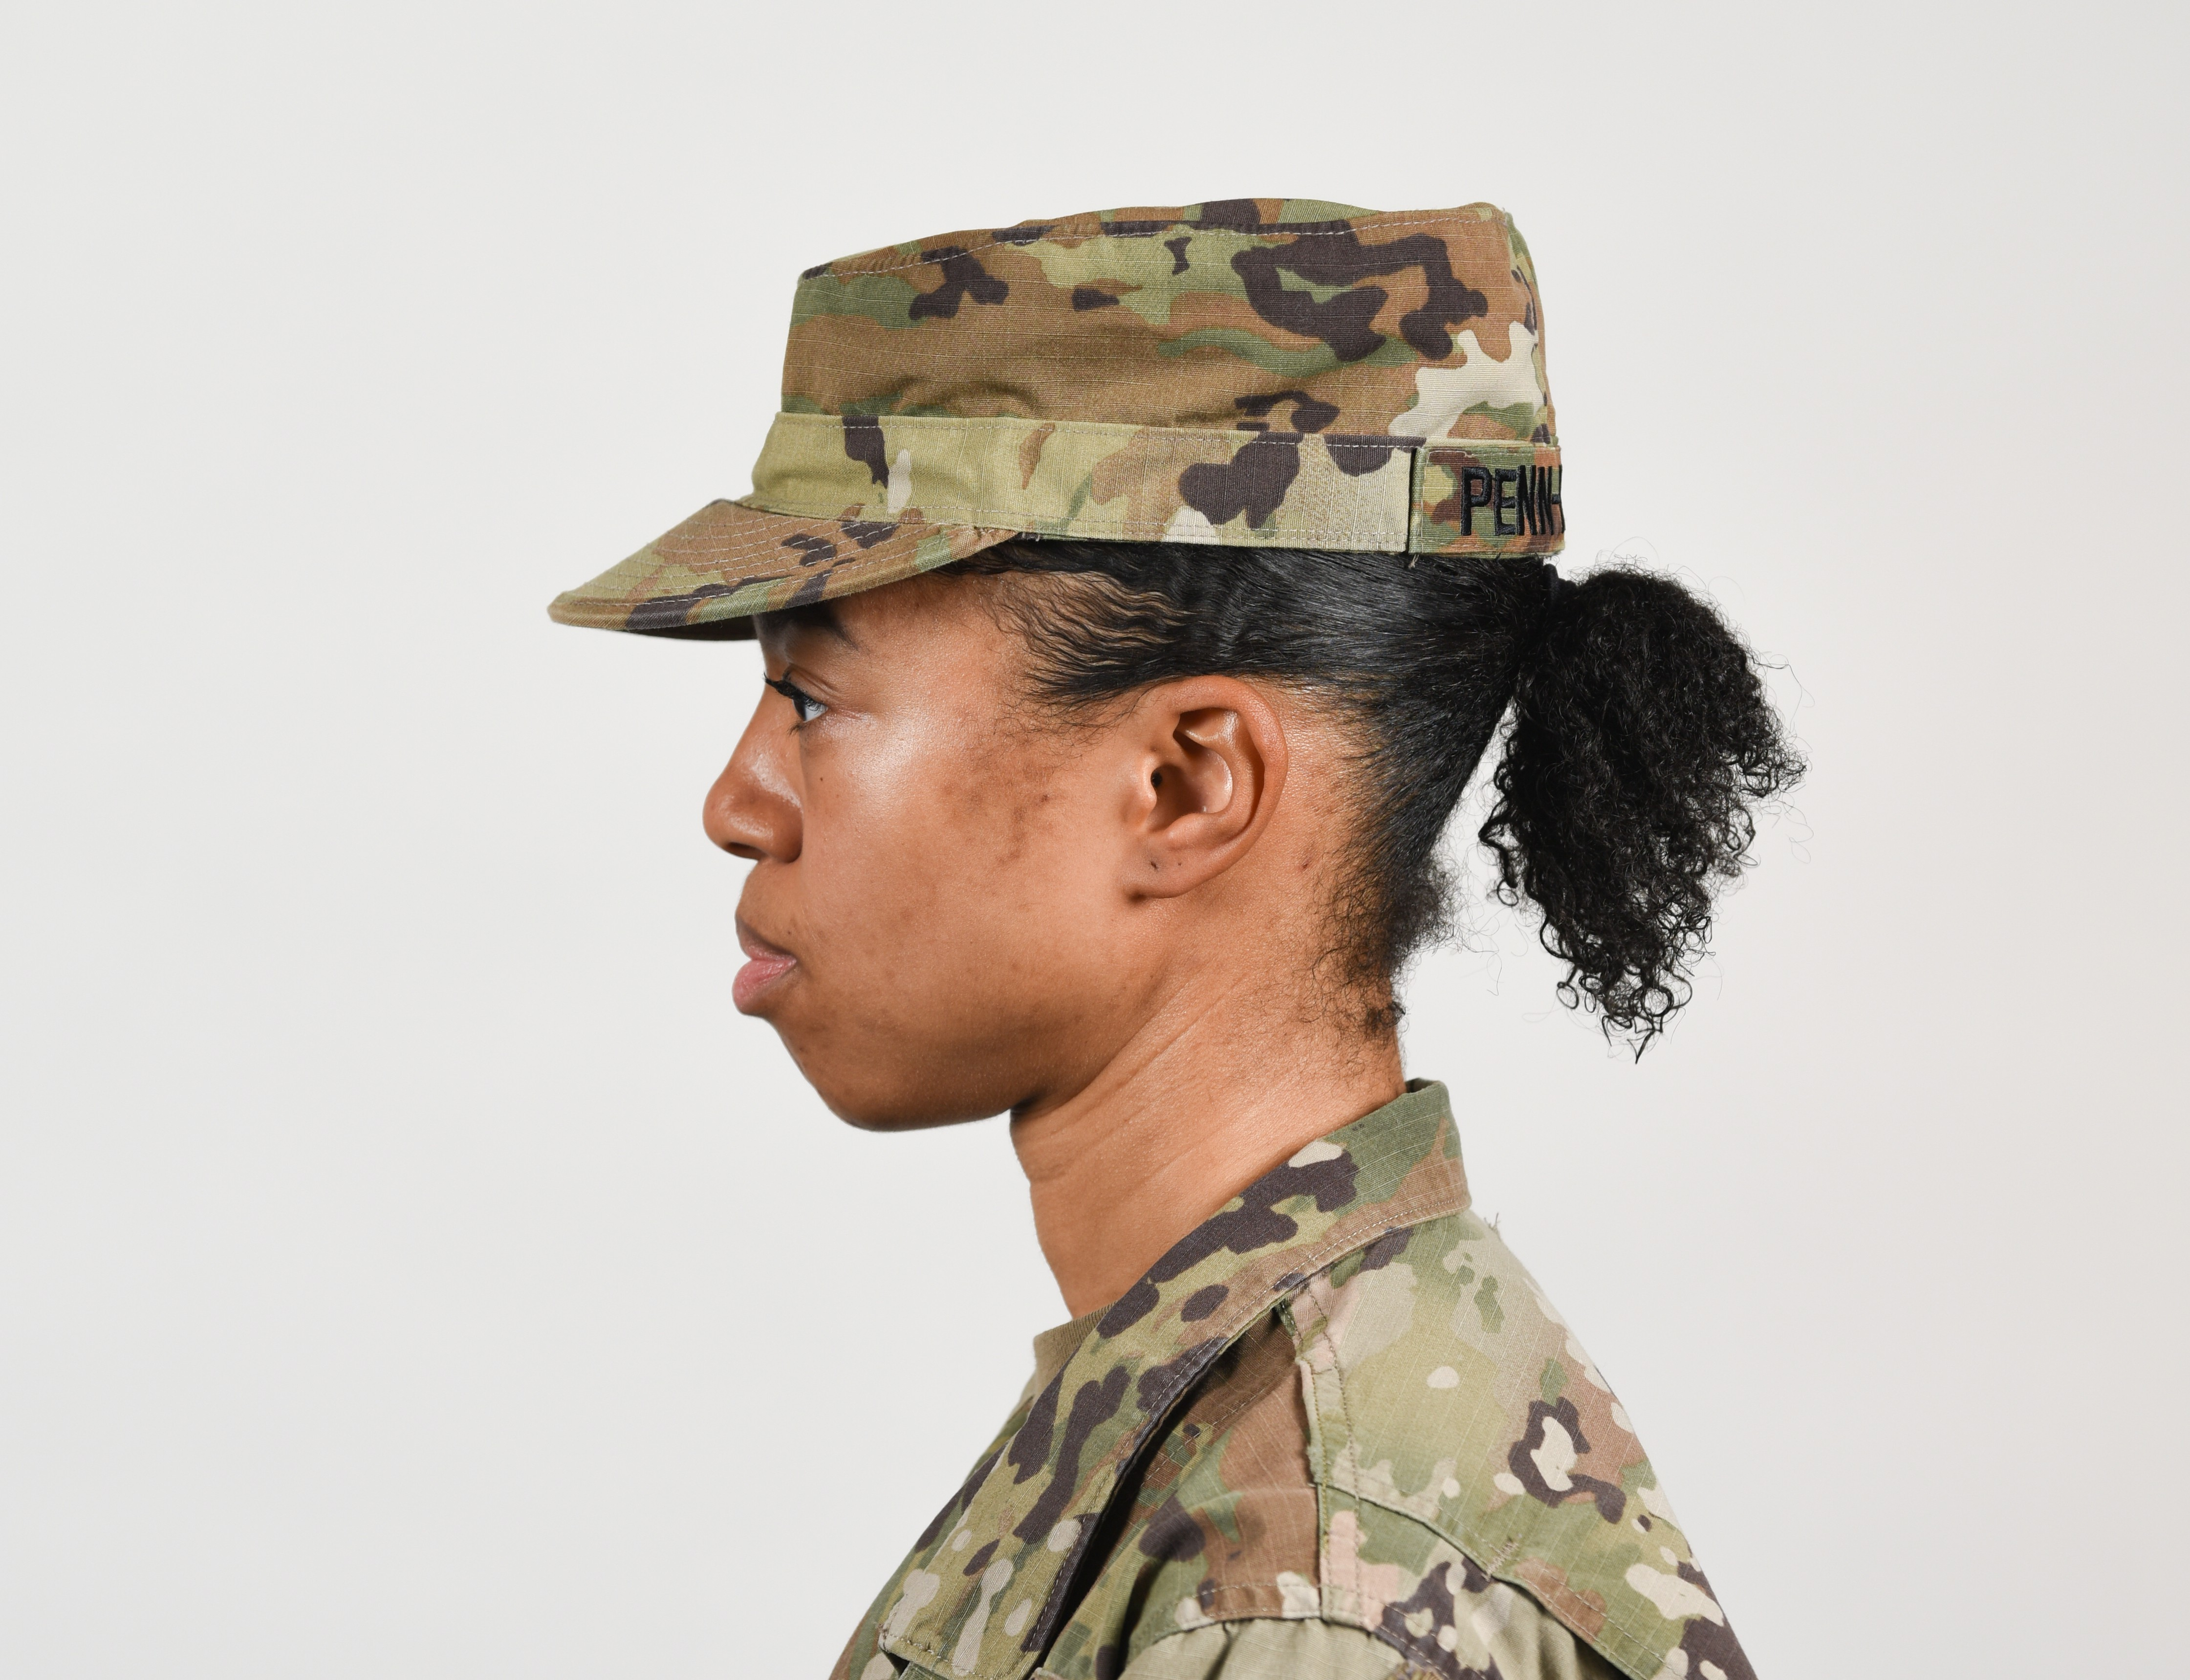 Army Announces New Grooming Appearance Standards Article The United States Army